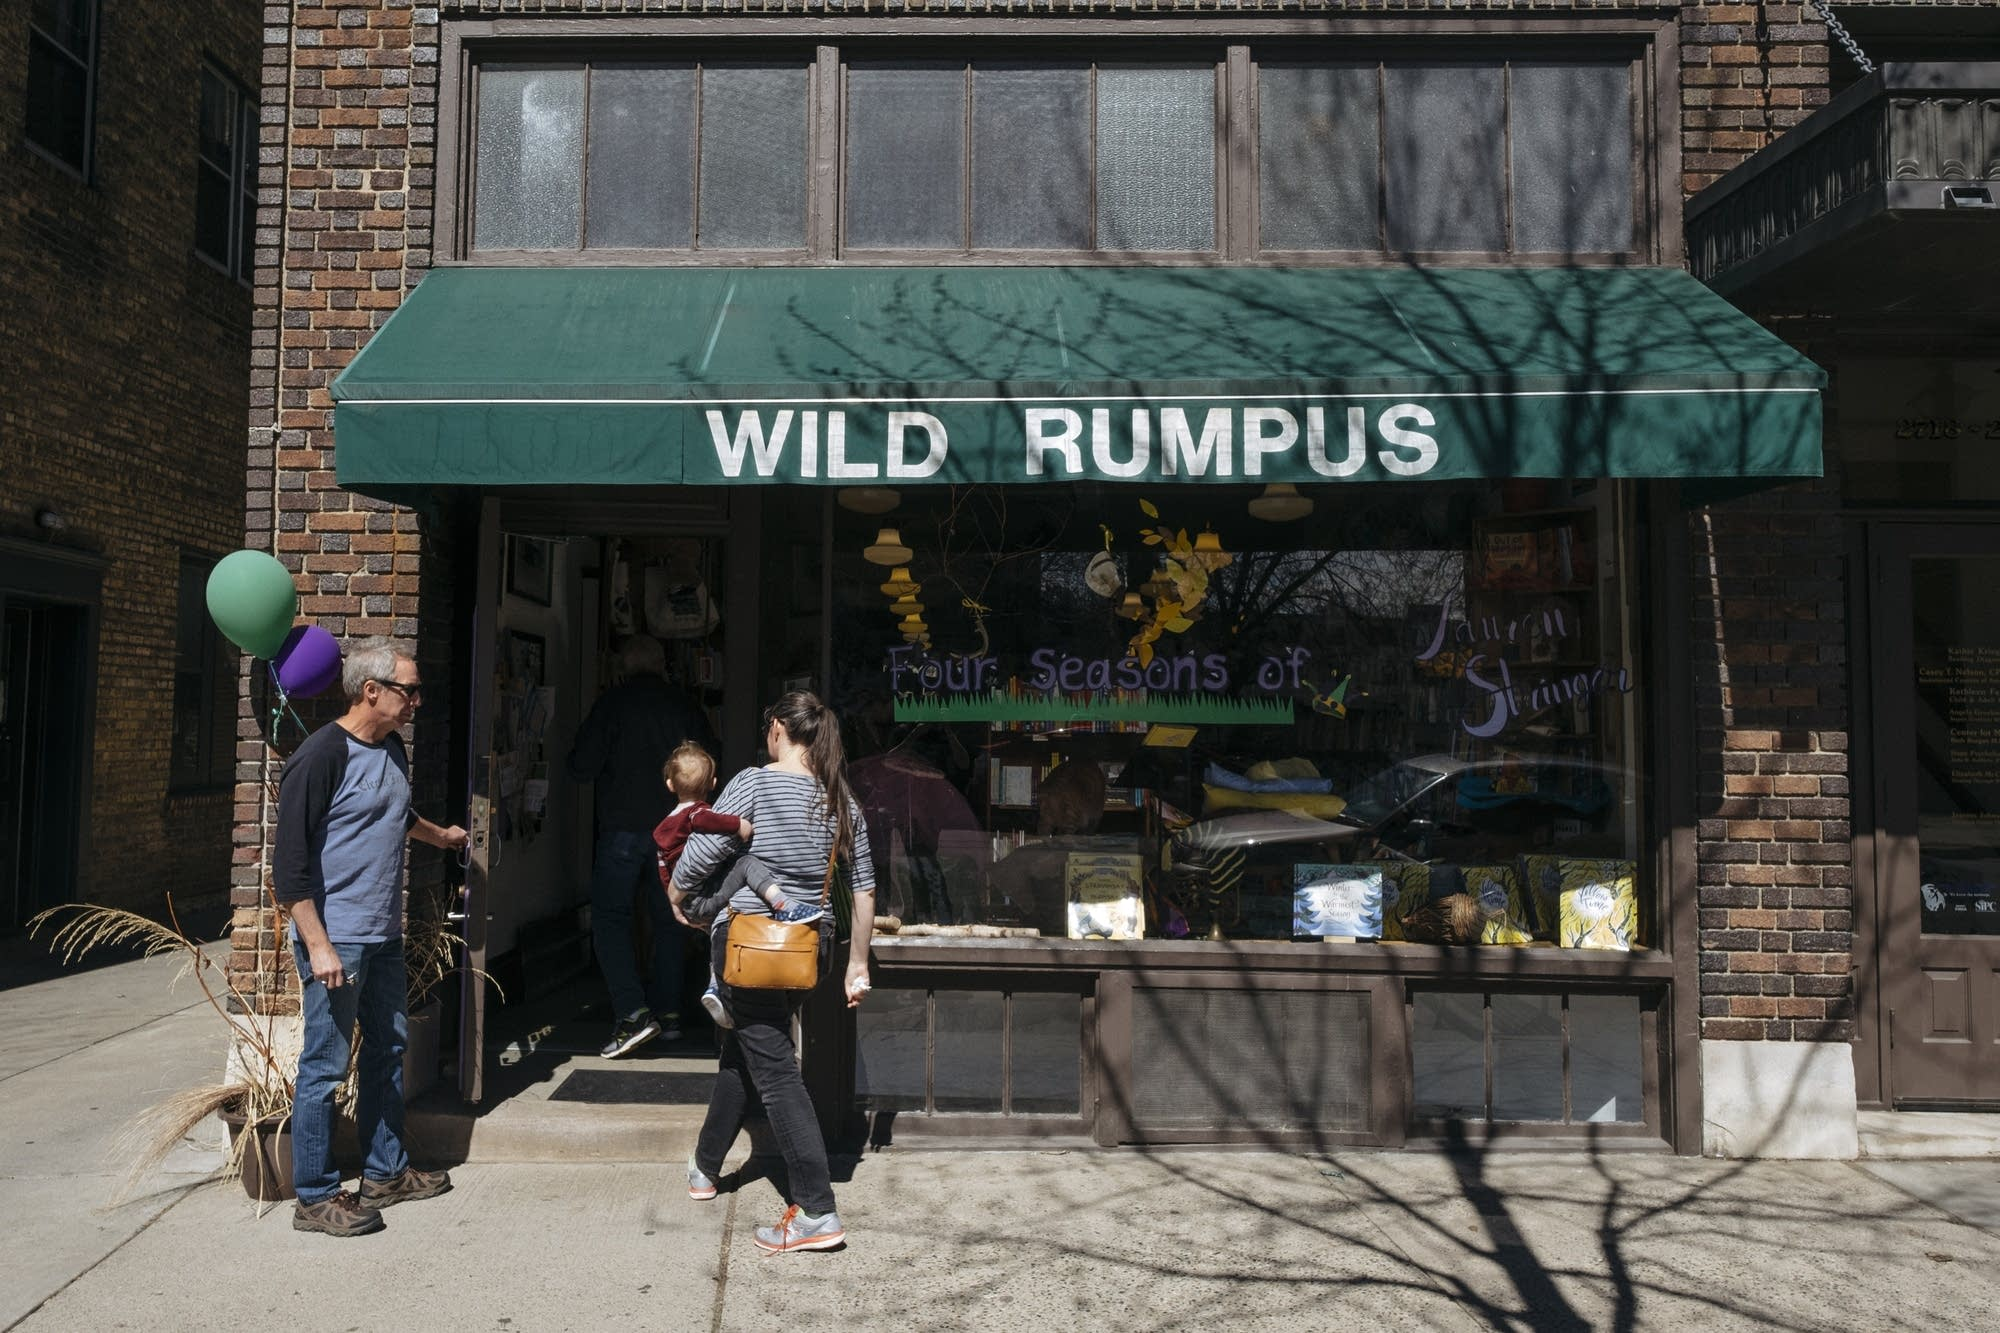 Outside of Wild Rumpus.